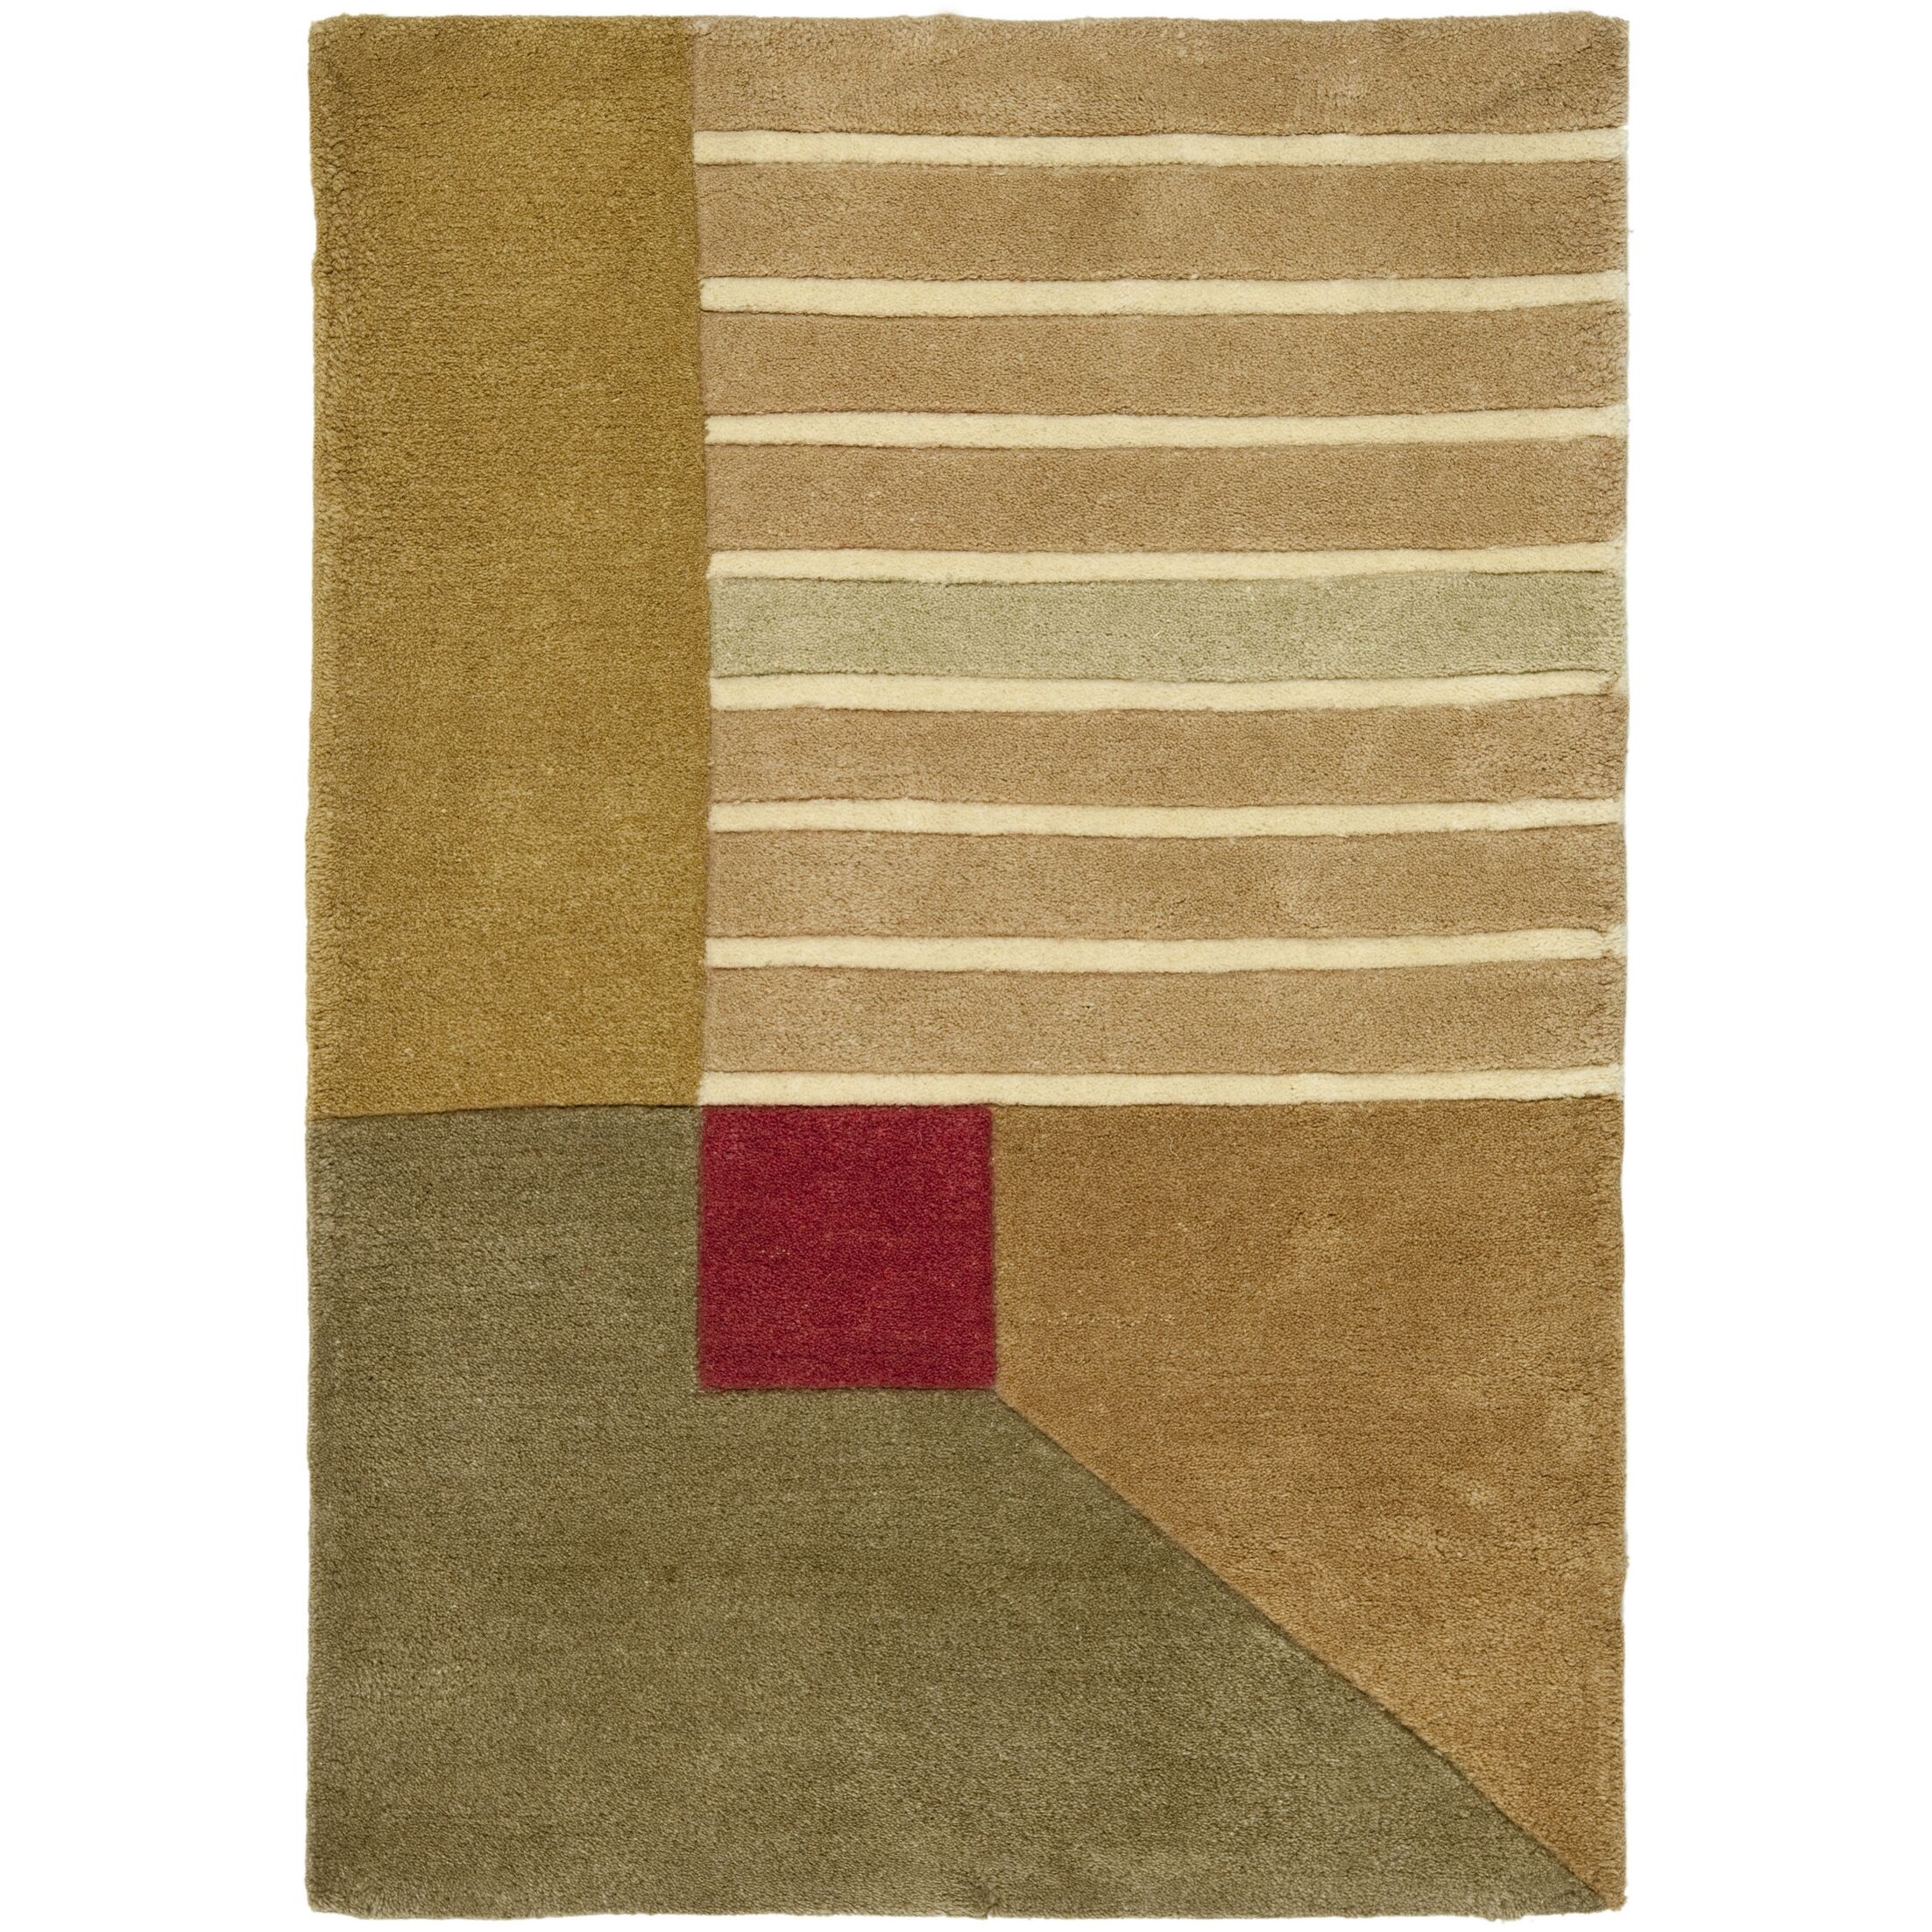 Rodeo Drive Trio Beige/Gold Area Rug Rug Size: Rectangle 5' x 8'